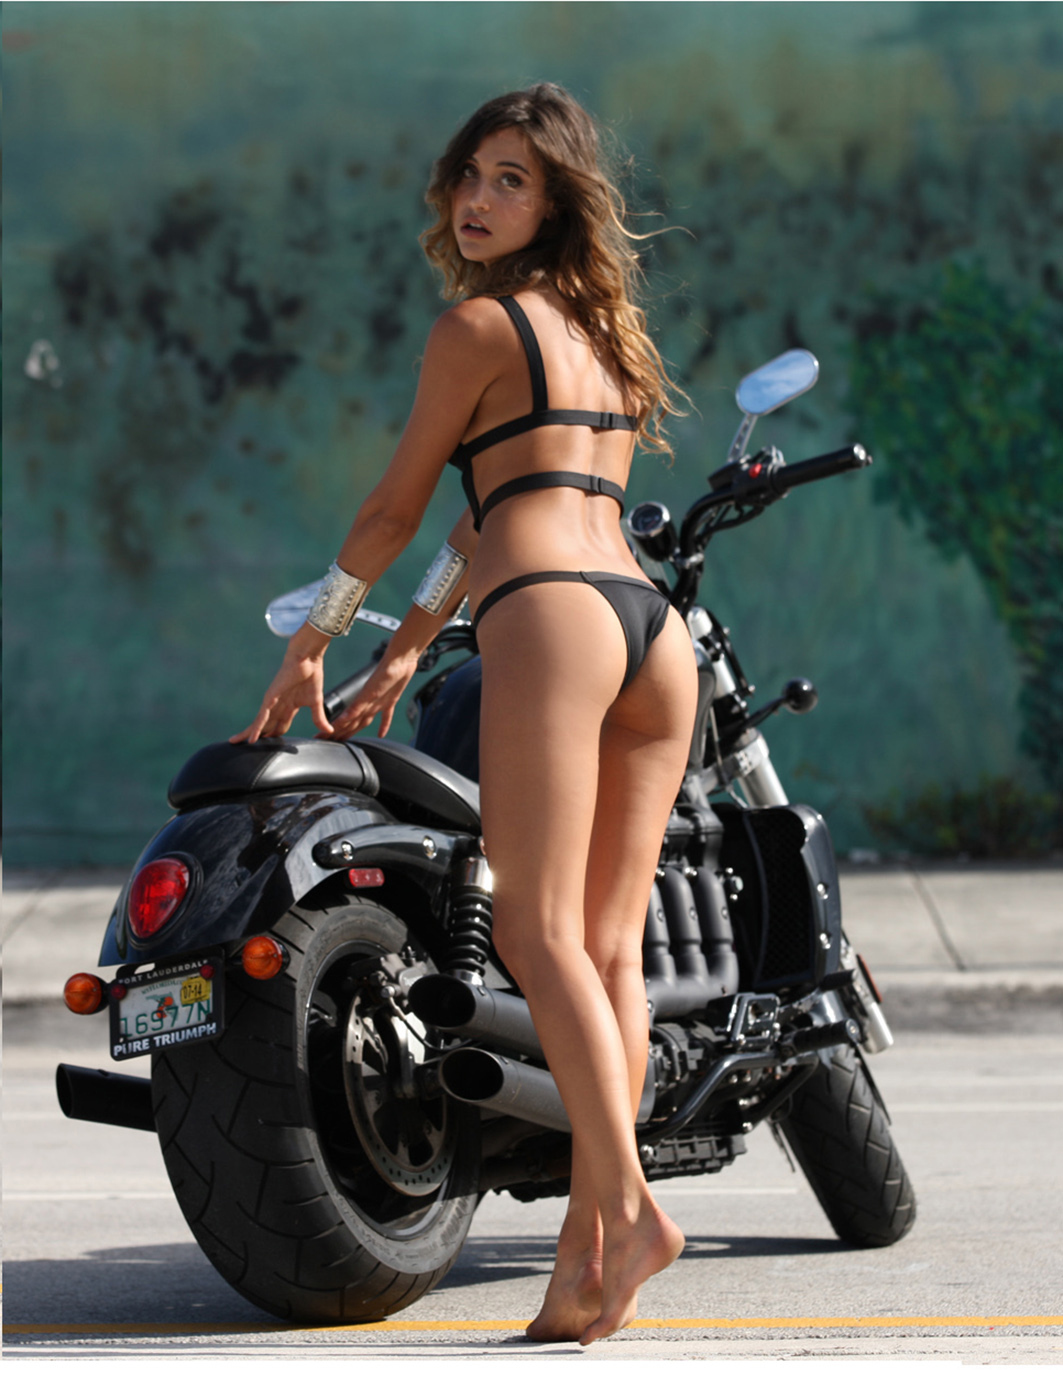 hot girls on motorcycles xxx